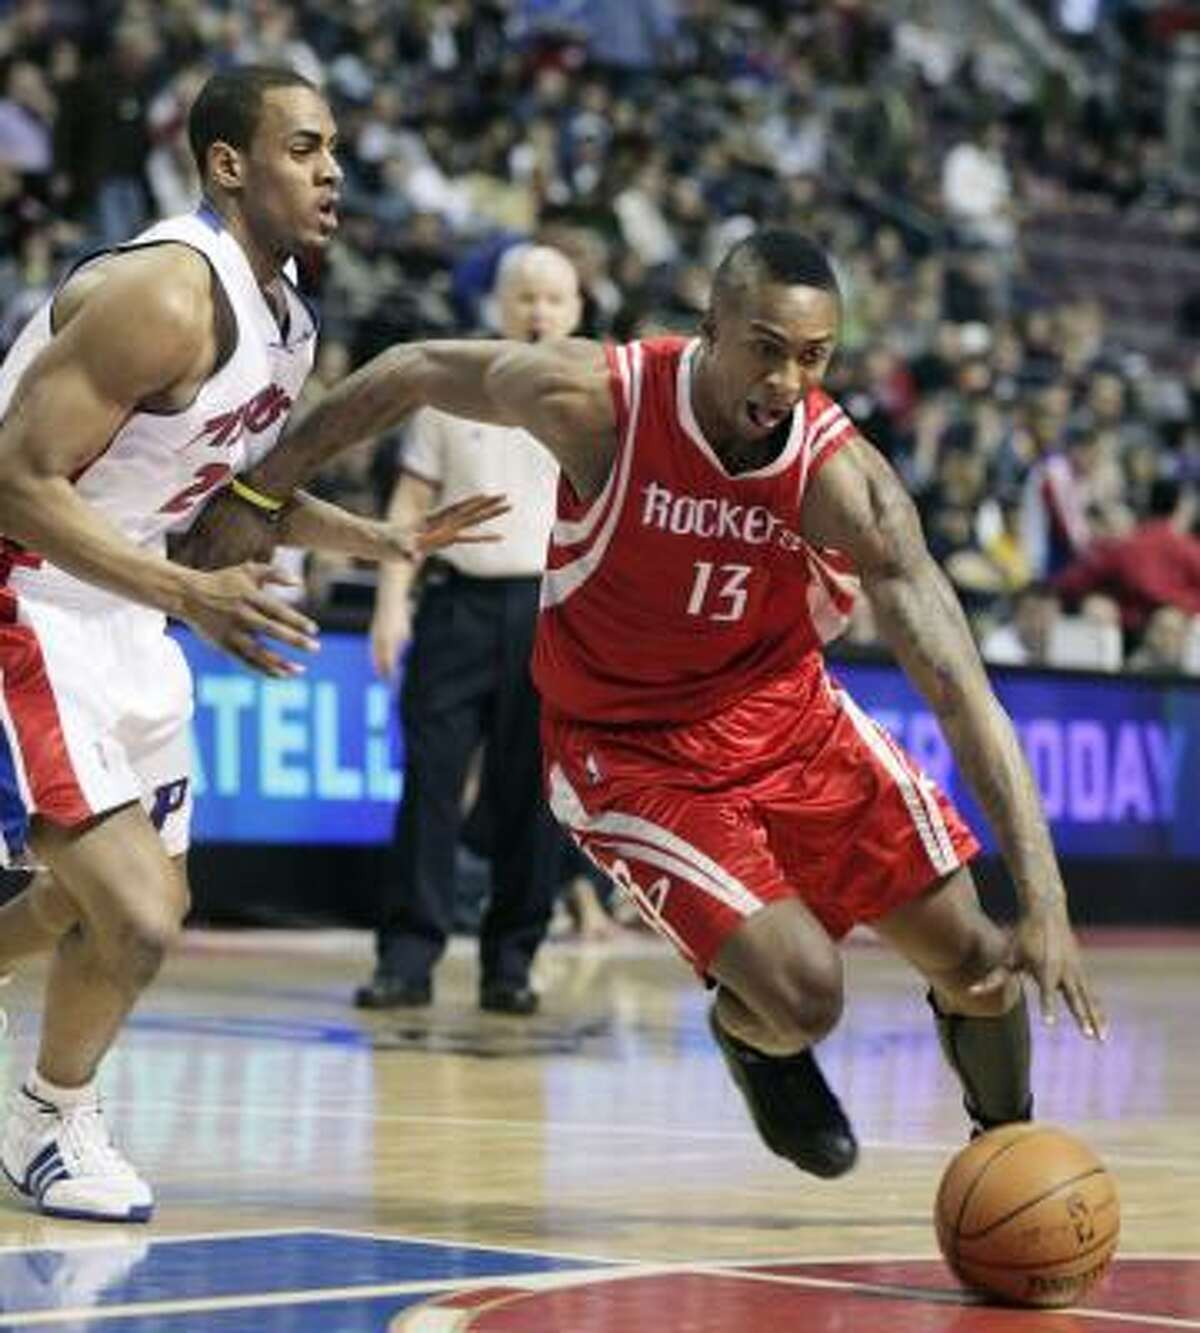 Von Wafer, right, drives to the basket against Pistons guard Arron Afflalo in the first half.